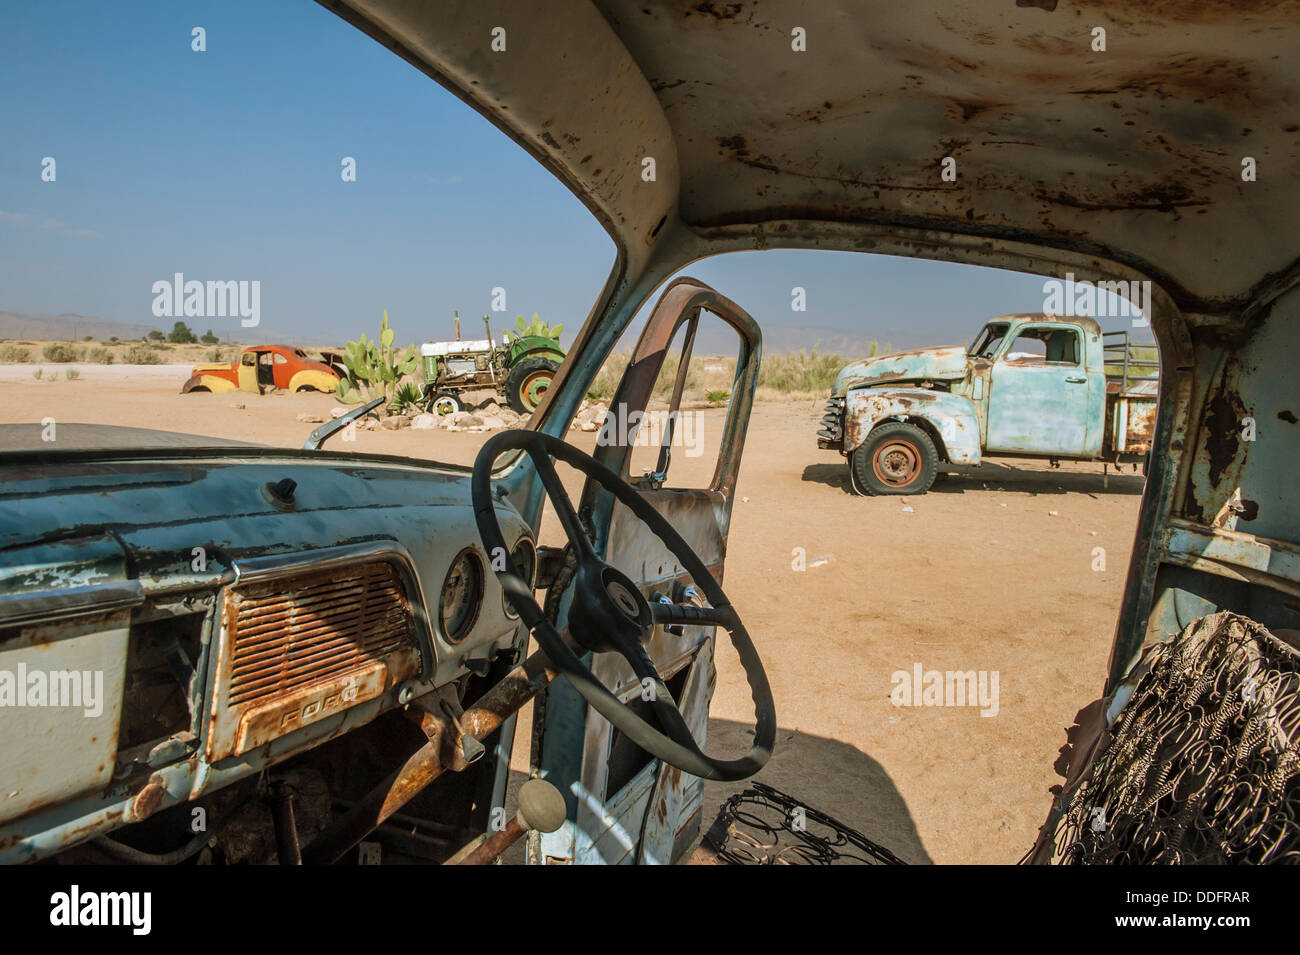 View from inside a car wreck at Solitaire, Khomas region, Namibia - Stock Image